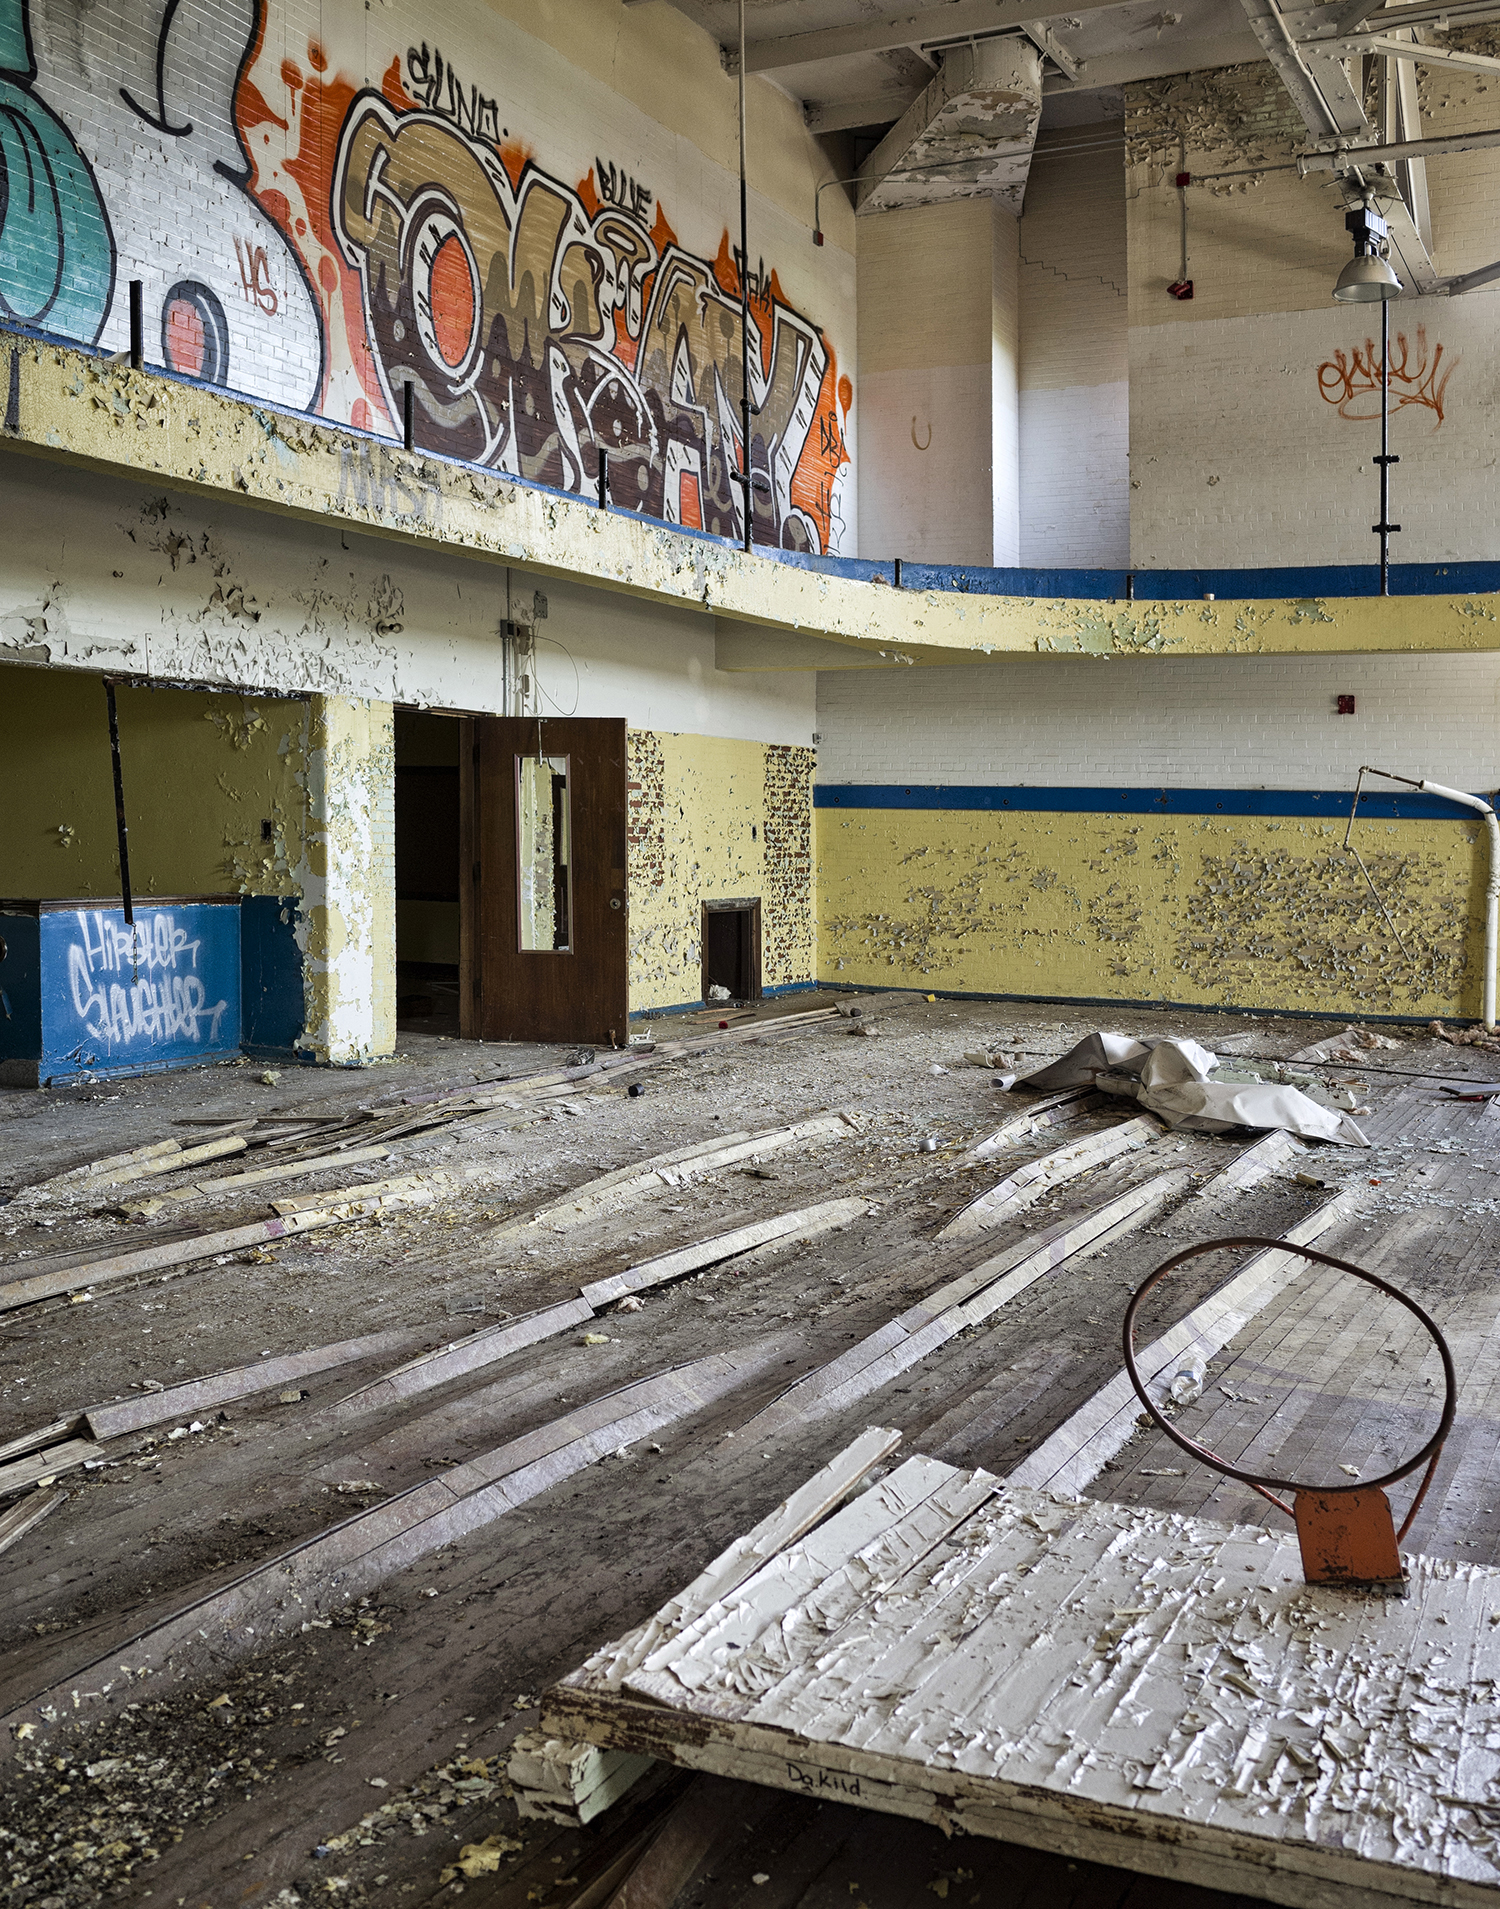 075_Detroit_CrossmanSchool.jpg